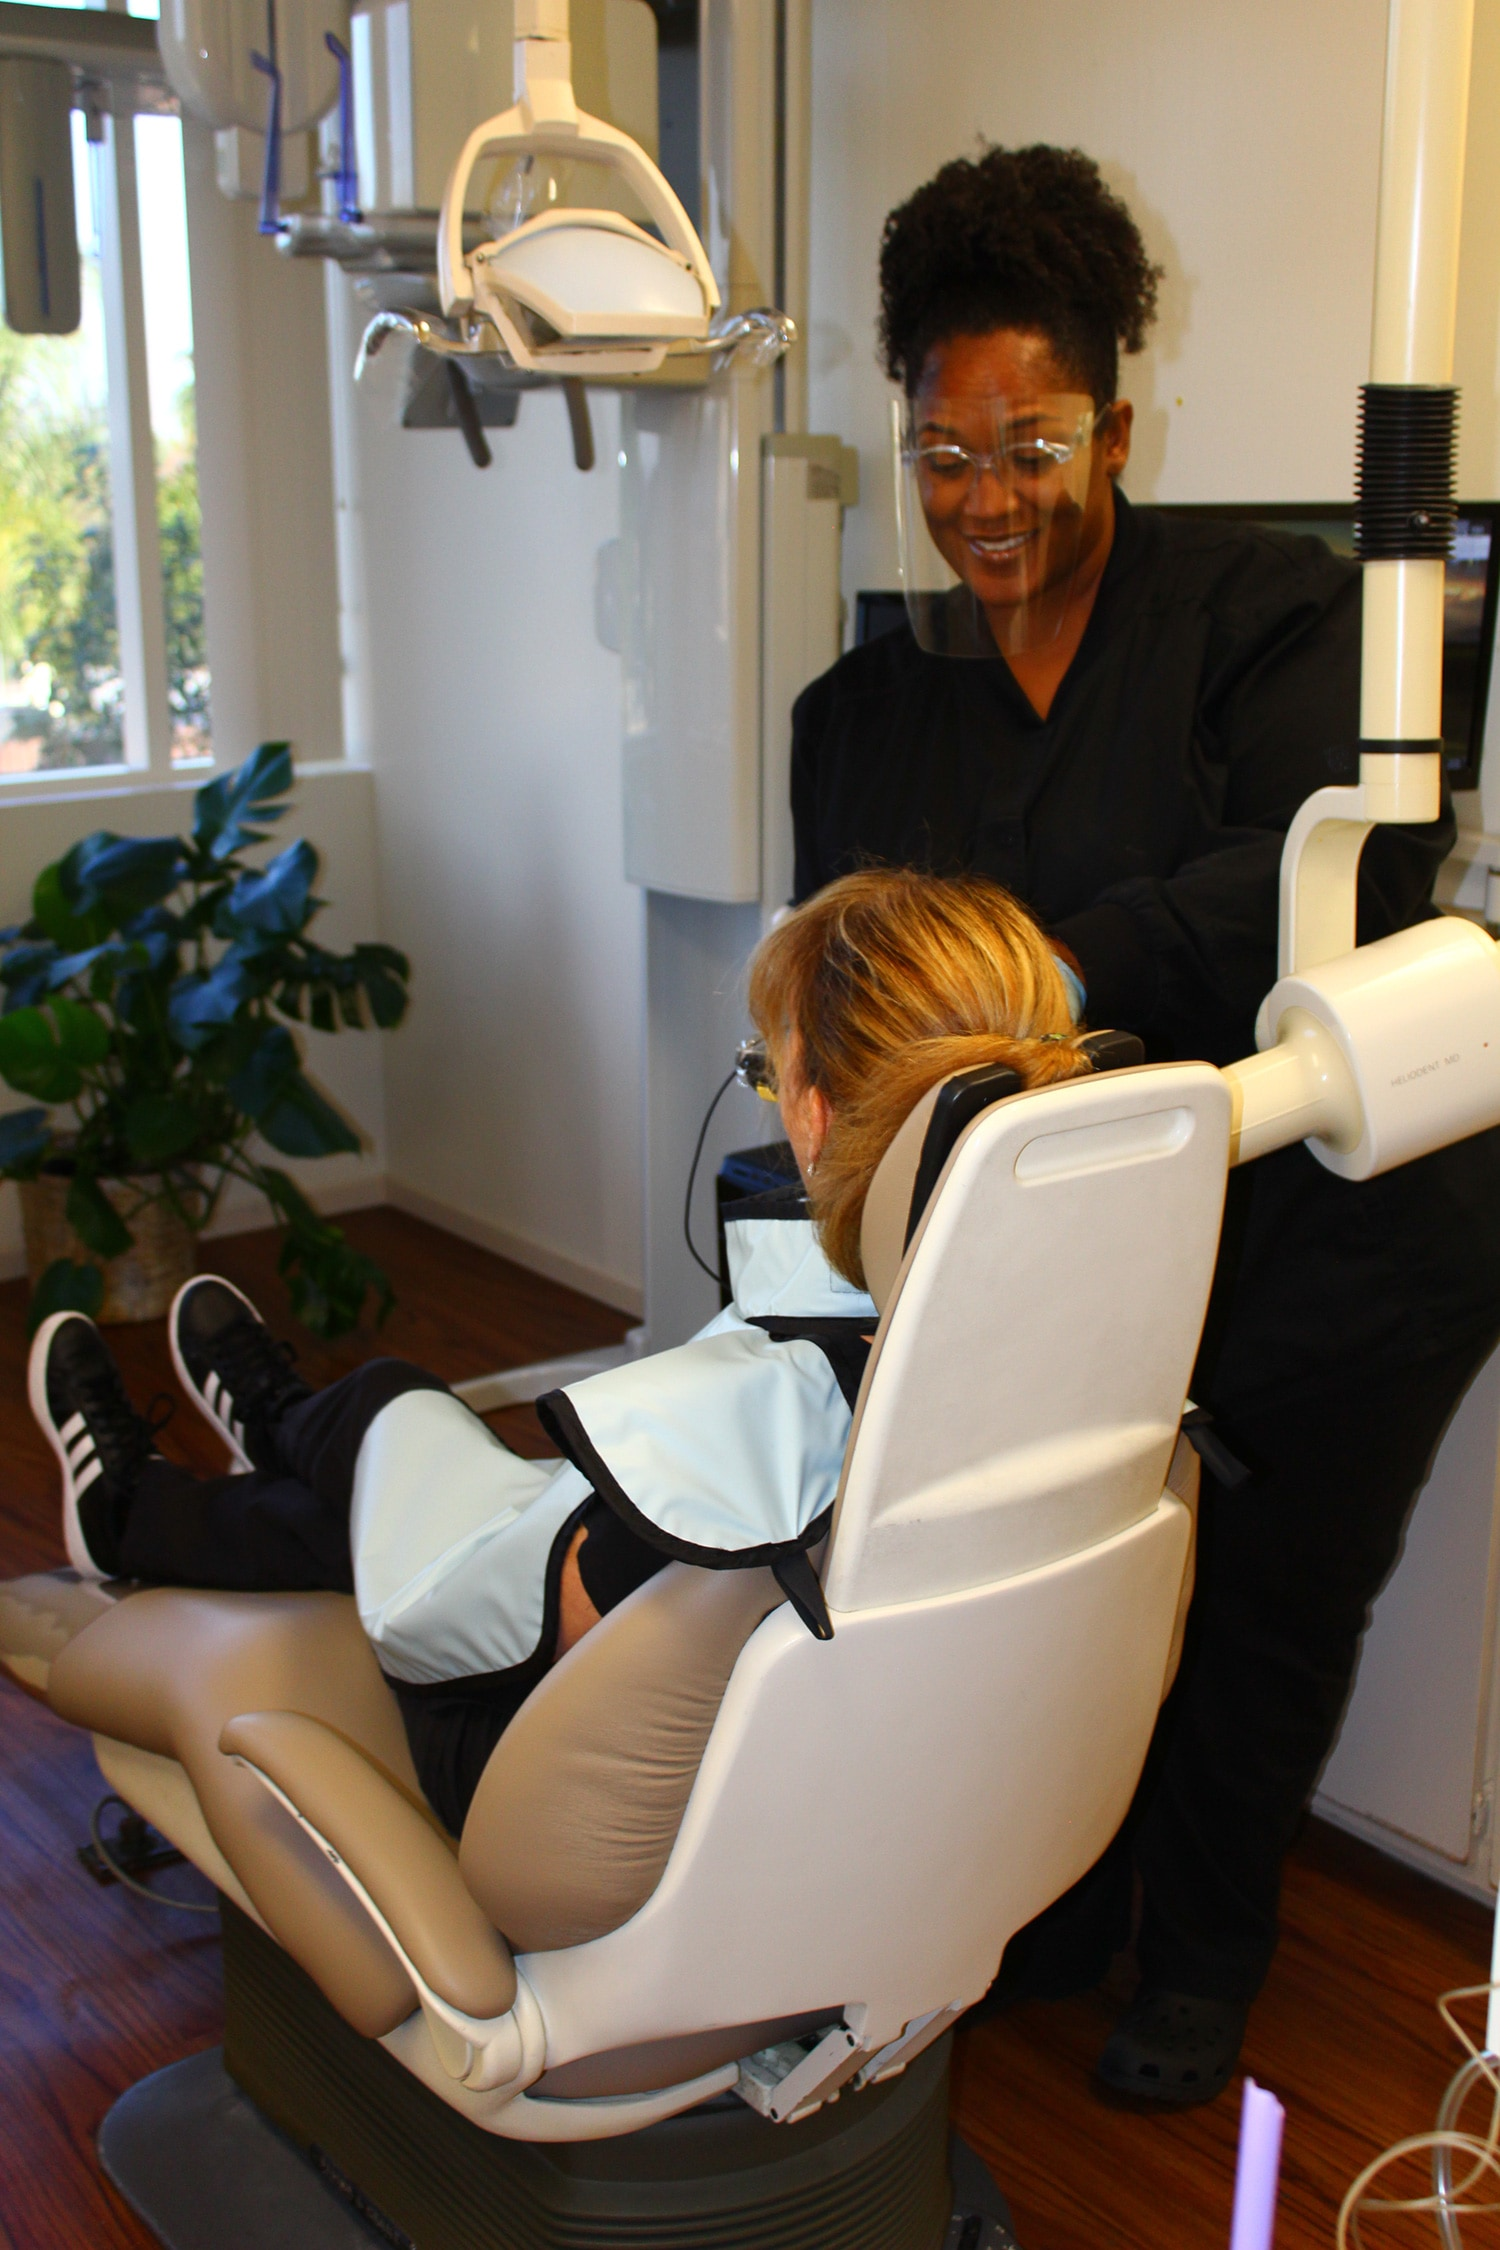 LaShon Bundy assisting a patient and Eninco dentist with root canal therapy at Encino Cosmetic Dentistry.